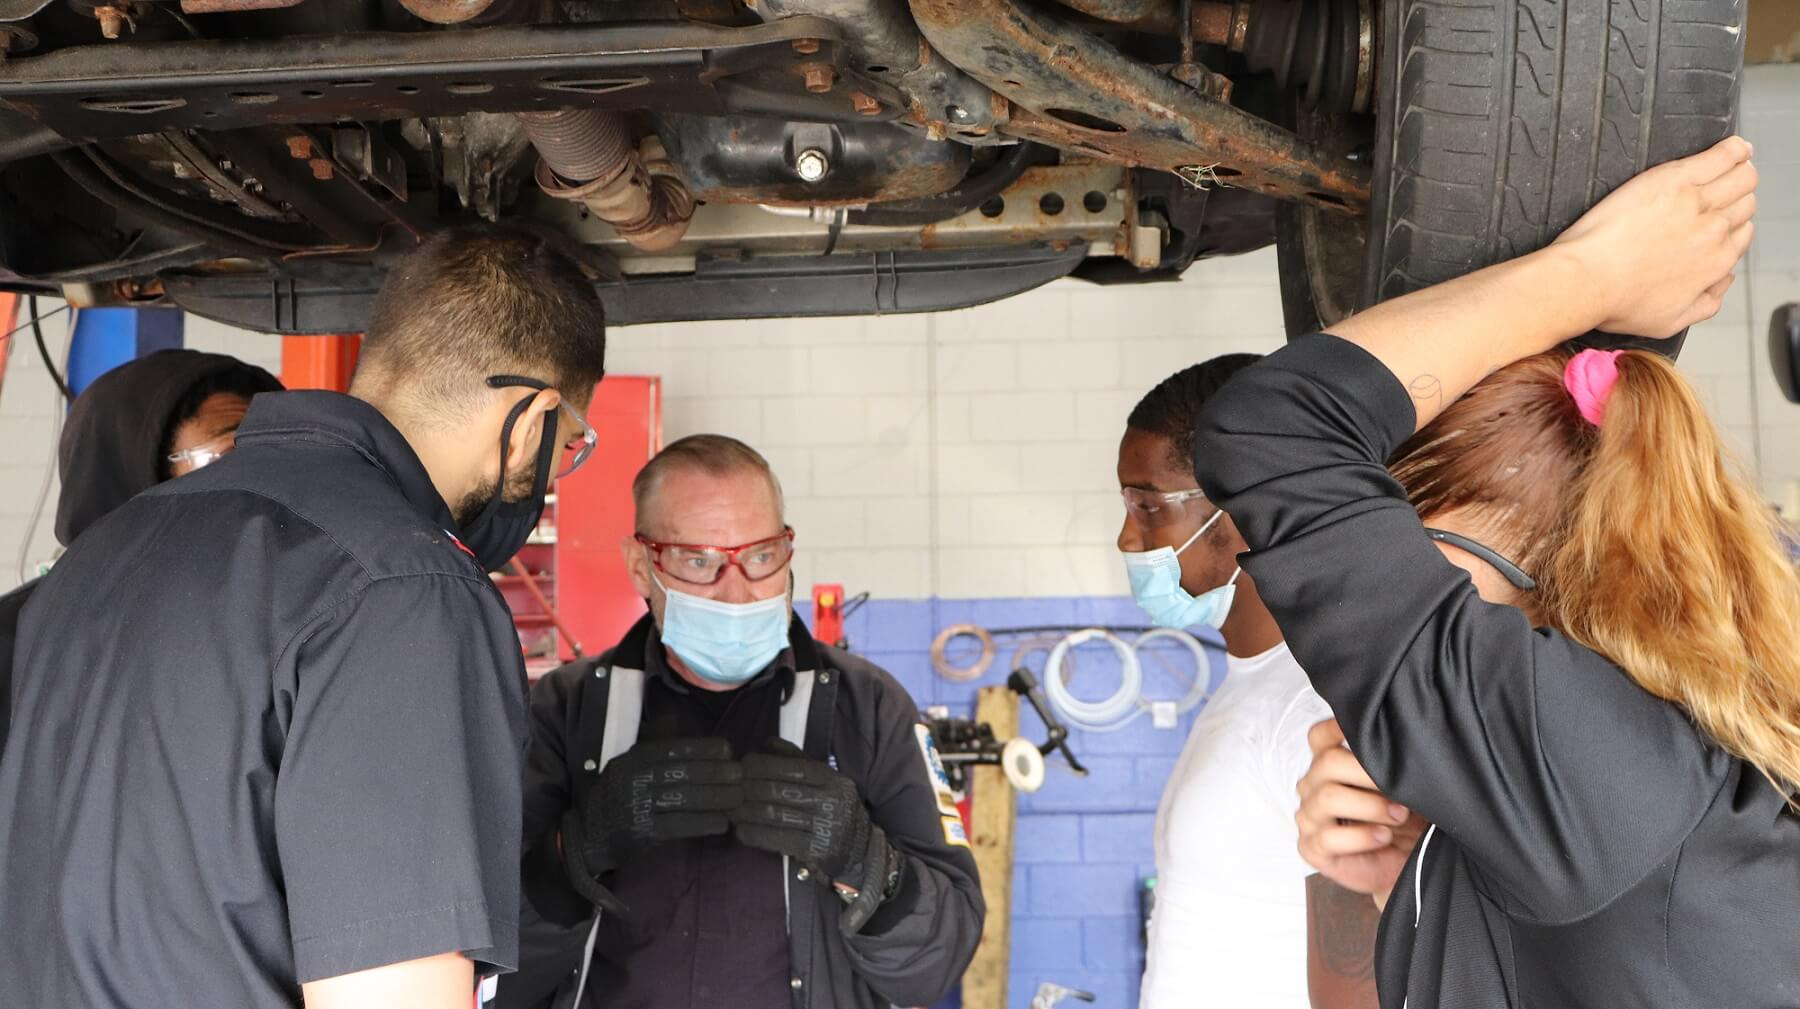 What Is The Average Salary Of An Auto Mechanic?